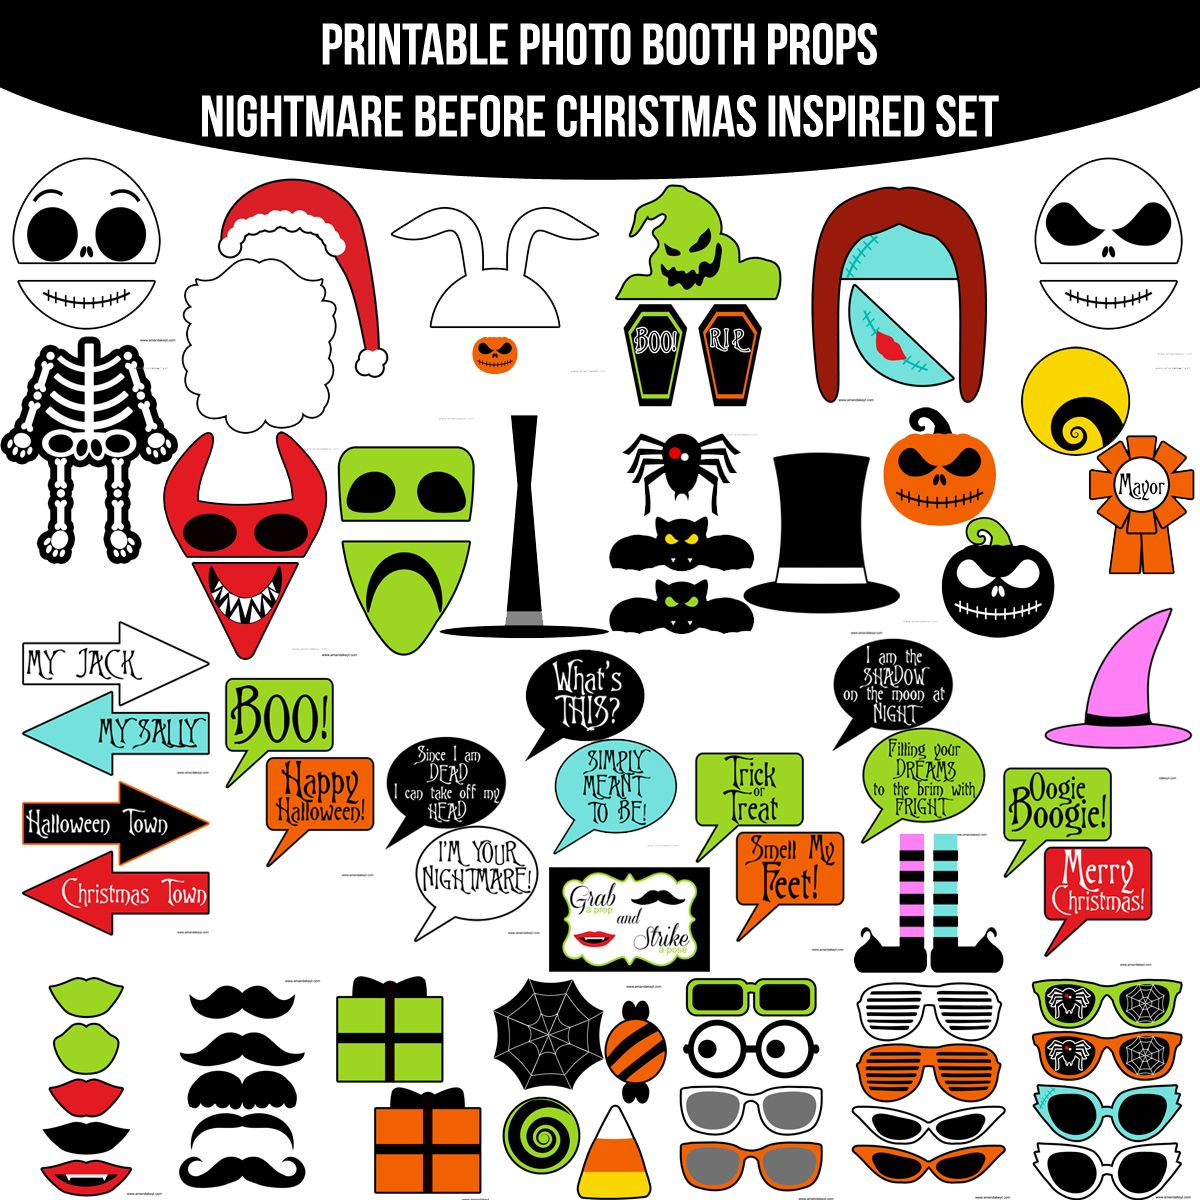 Instant Download Nightmare Before Christmas Inspired Printable Photo ...